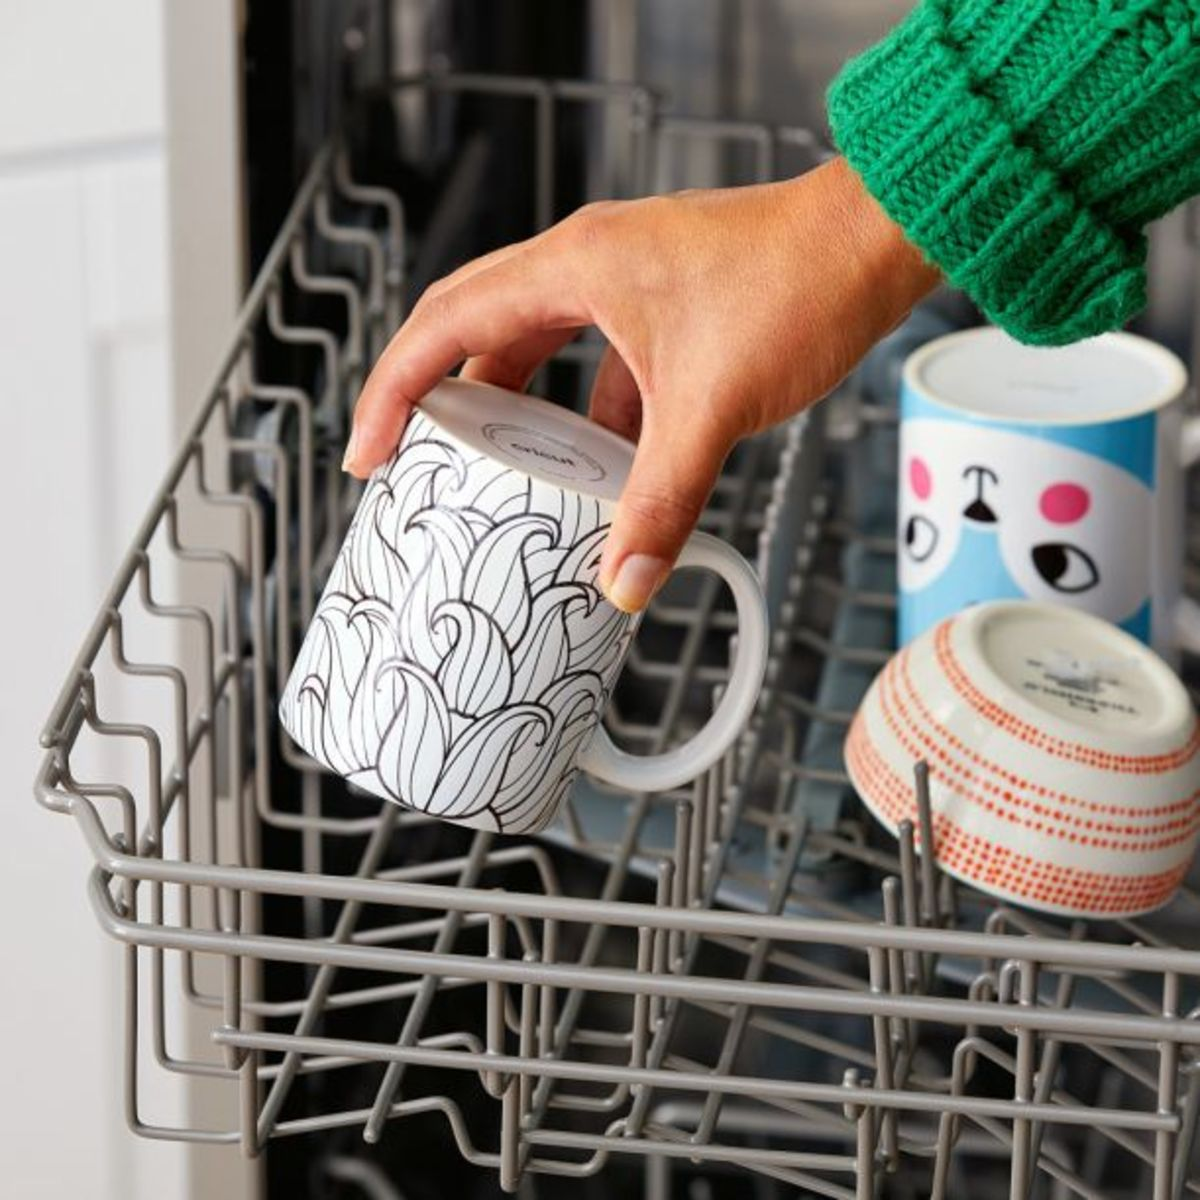 The infusible ink binds to the mug making it dishwasher safe